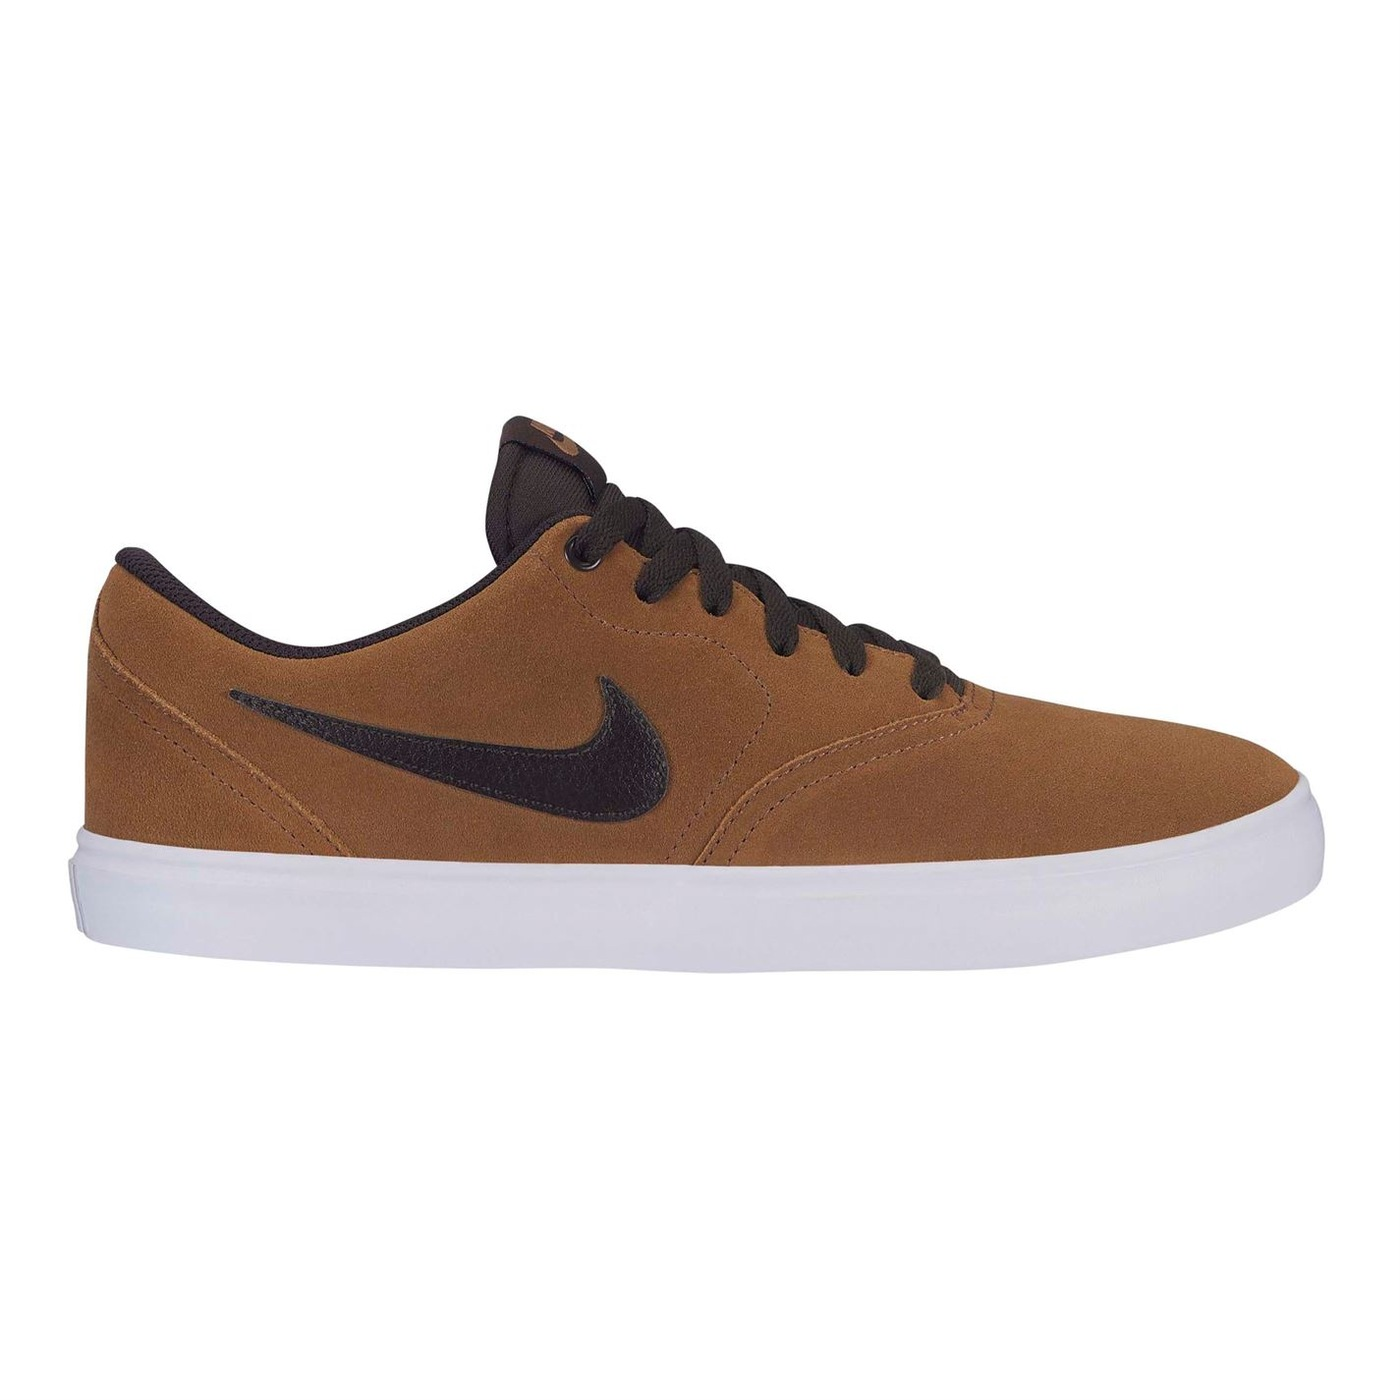 boty Nike Mogan Low 2 SE pánske Skate Shoes